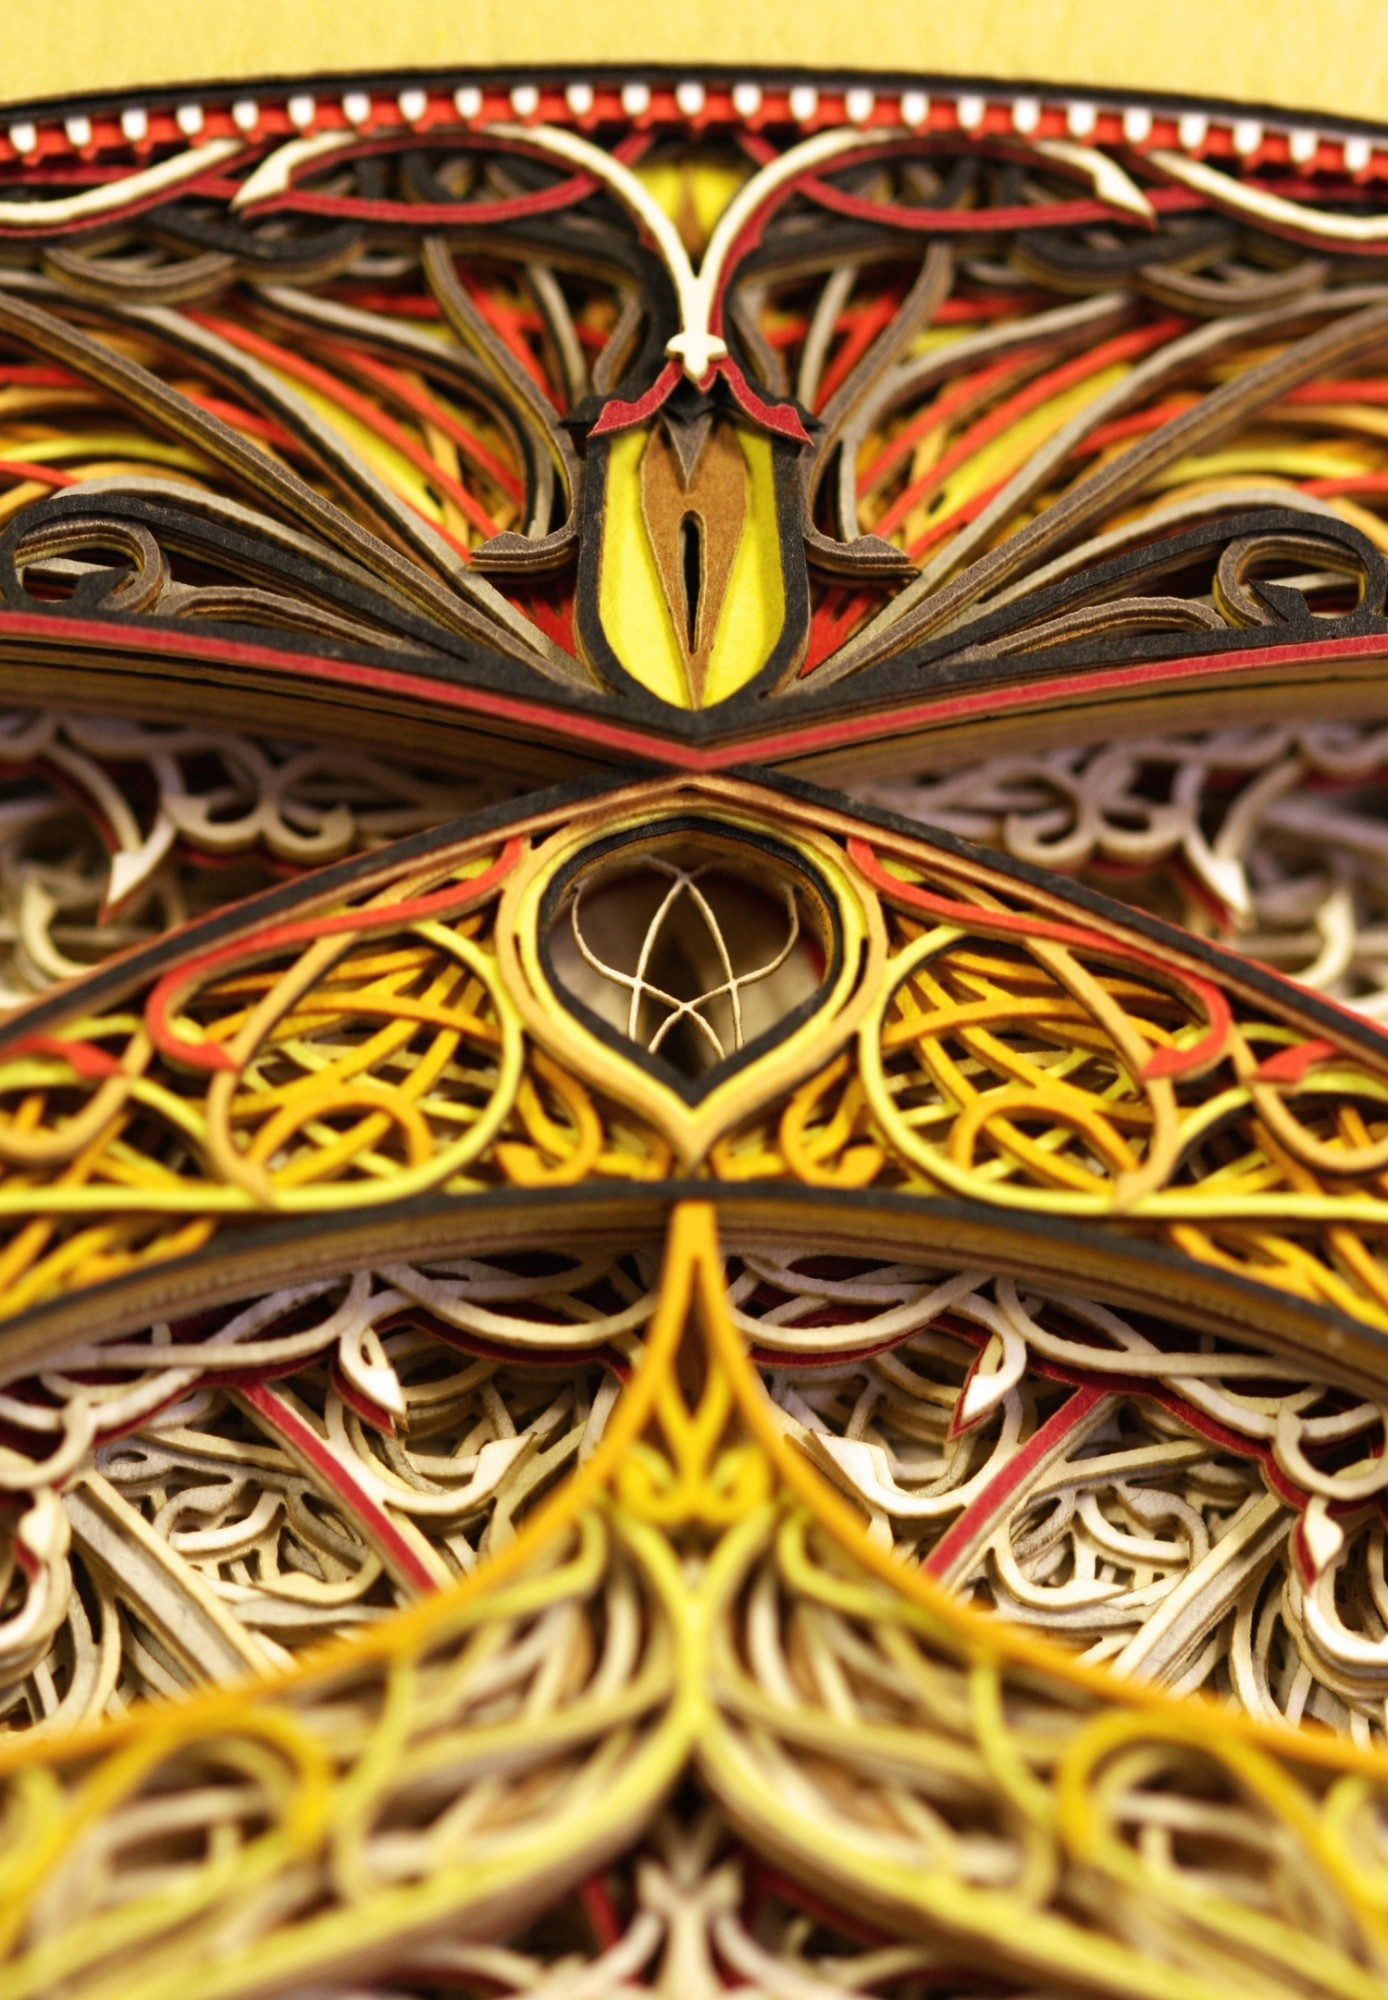 intricate-stained-glass-windows-colorful-laser-cut-paper-eric-standley-either-or-epsilon-detail-3-strictlypaper